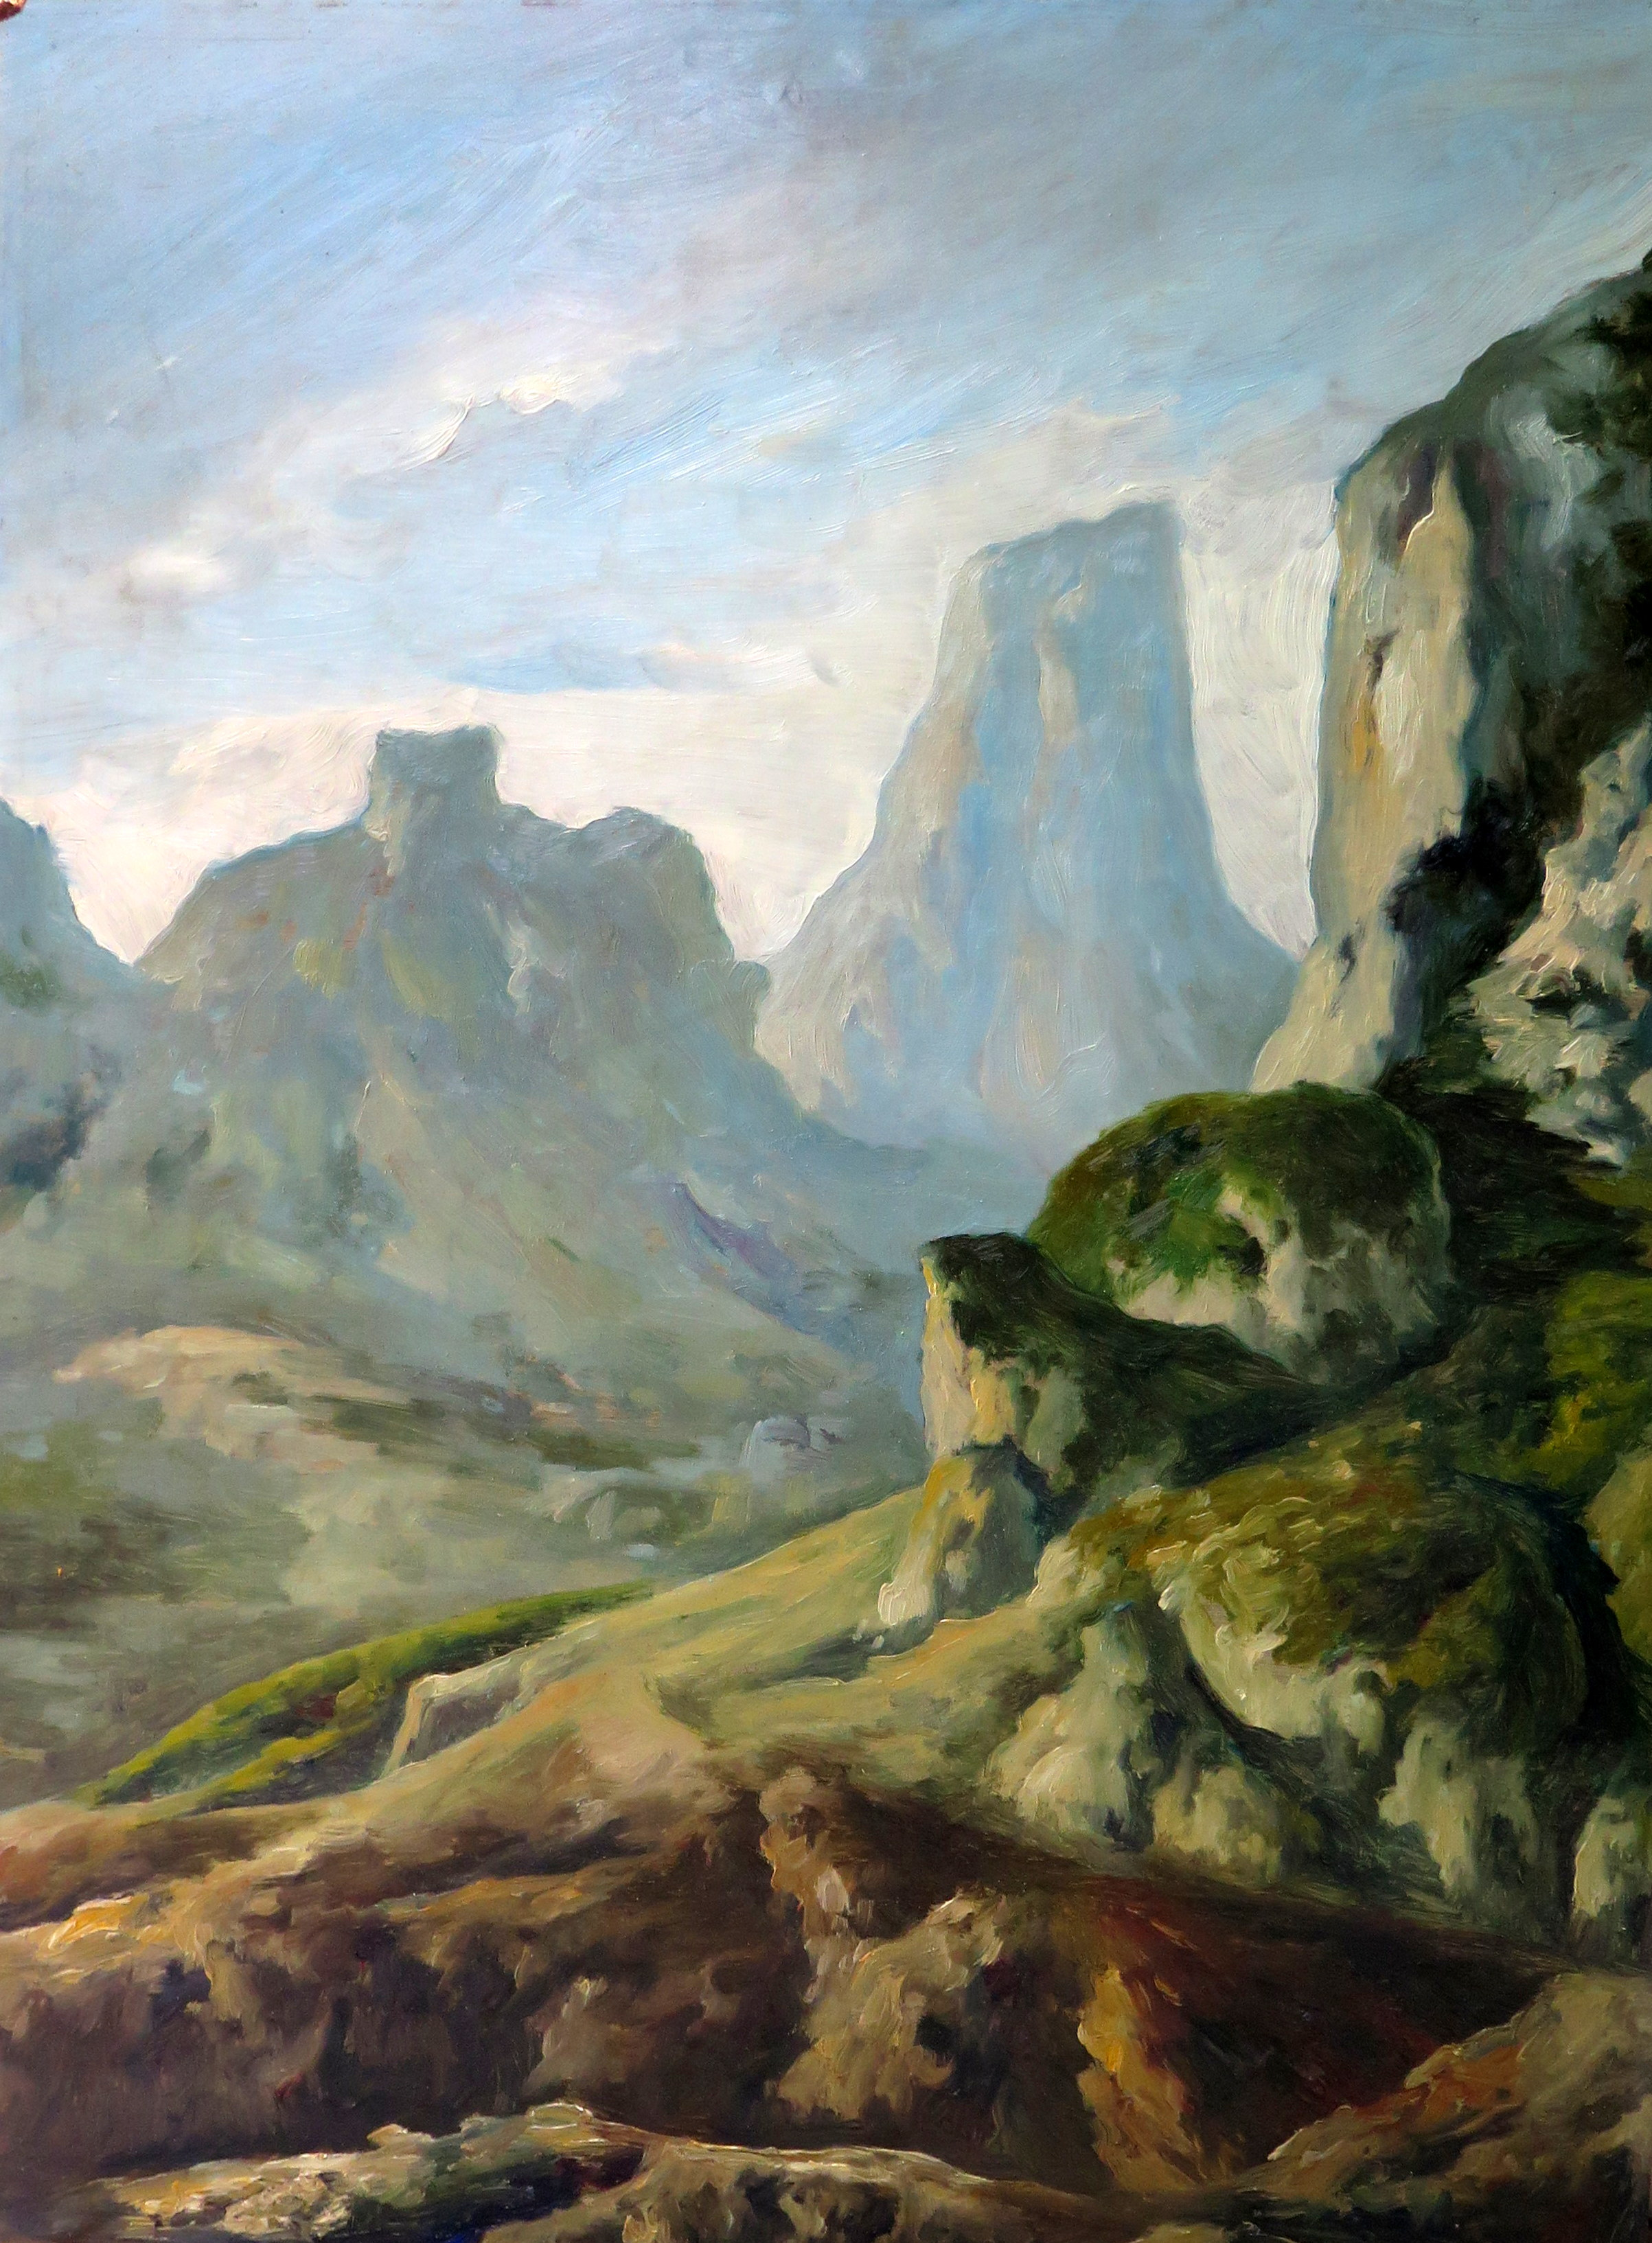 Untitled Desert Mountain Landscape